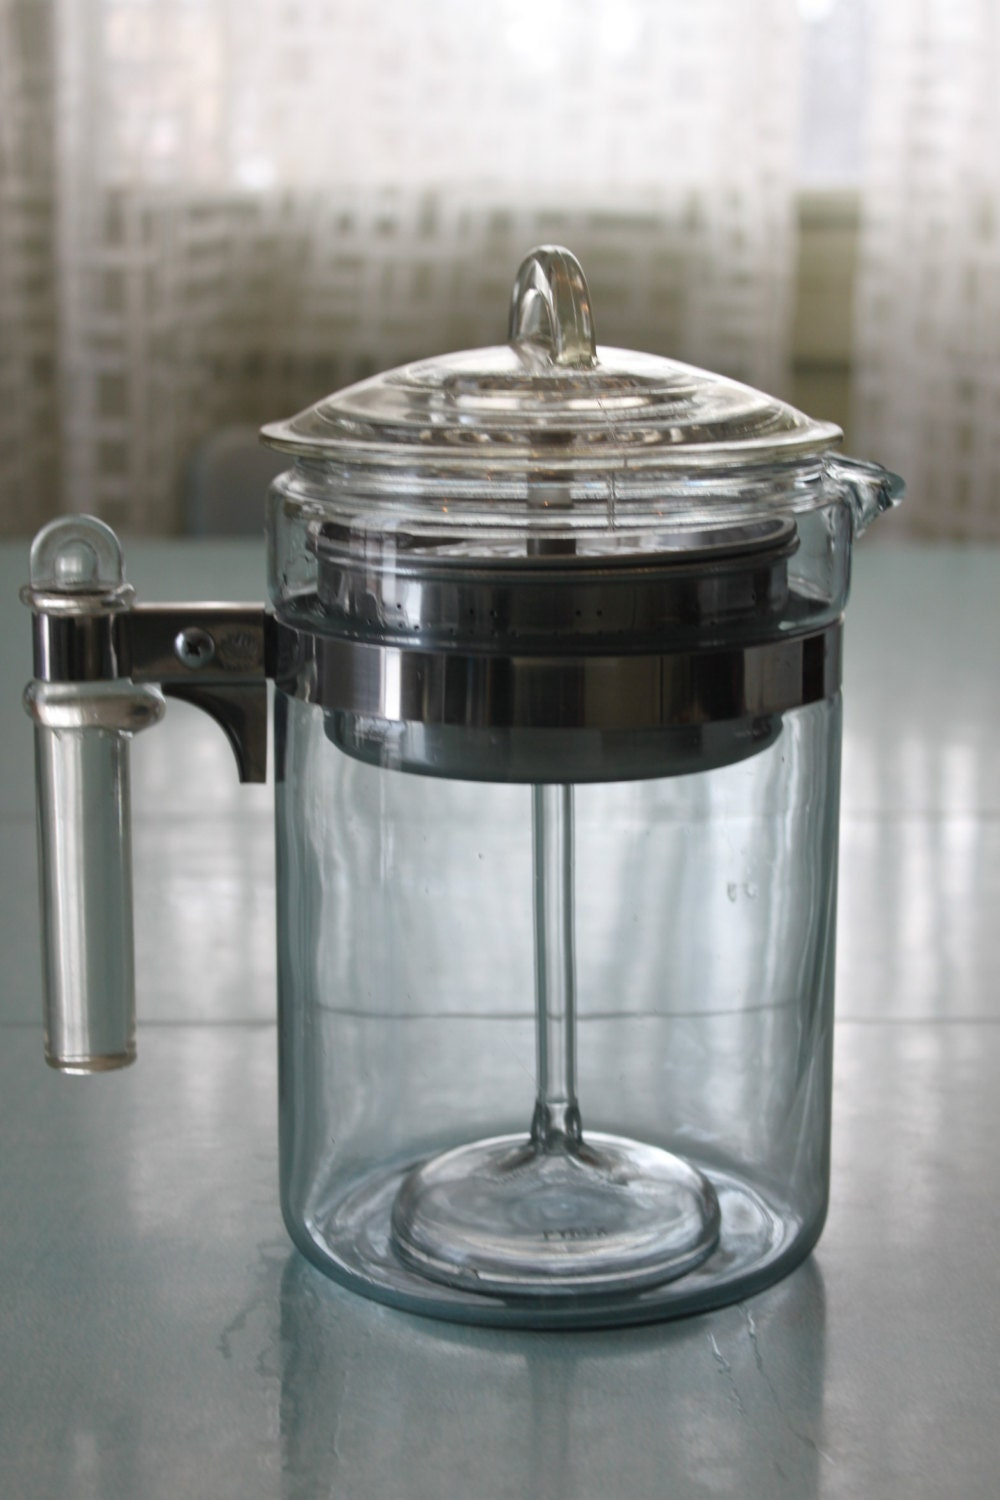 Old Time Coffee Maker : 6-9 Cup Vintage Pyrex Glass Flameware Coffee Pot Percolator